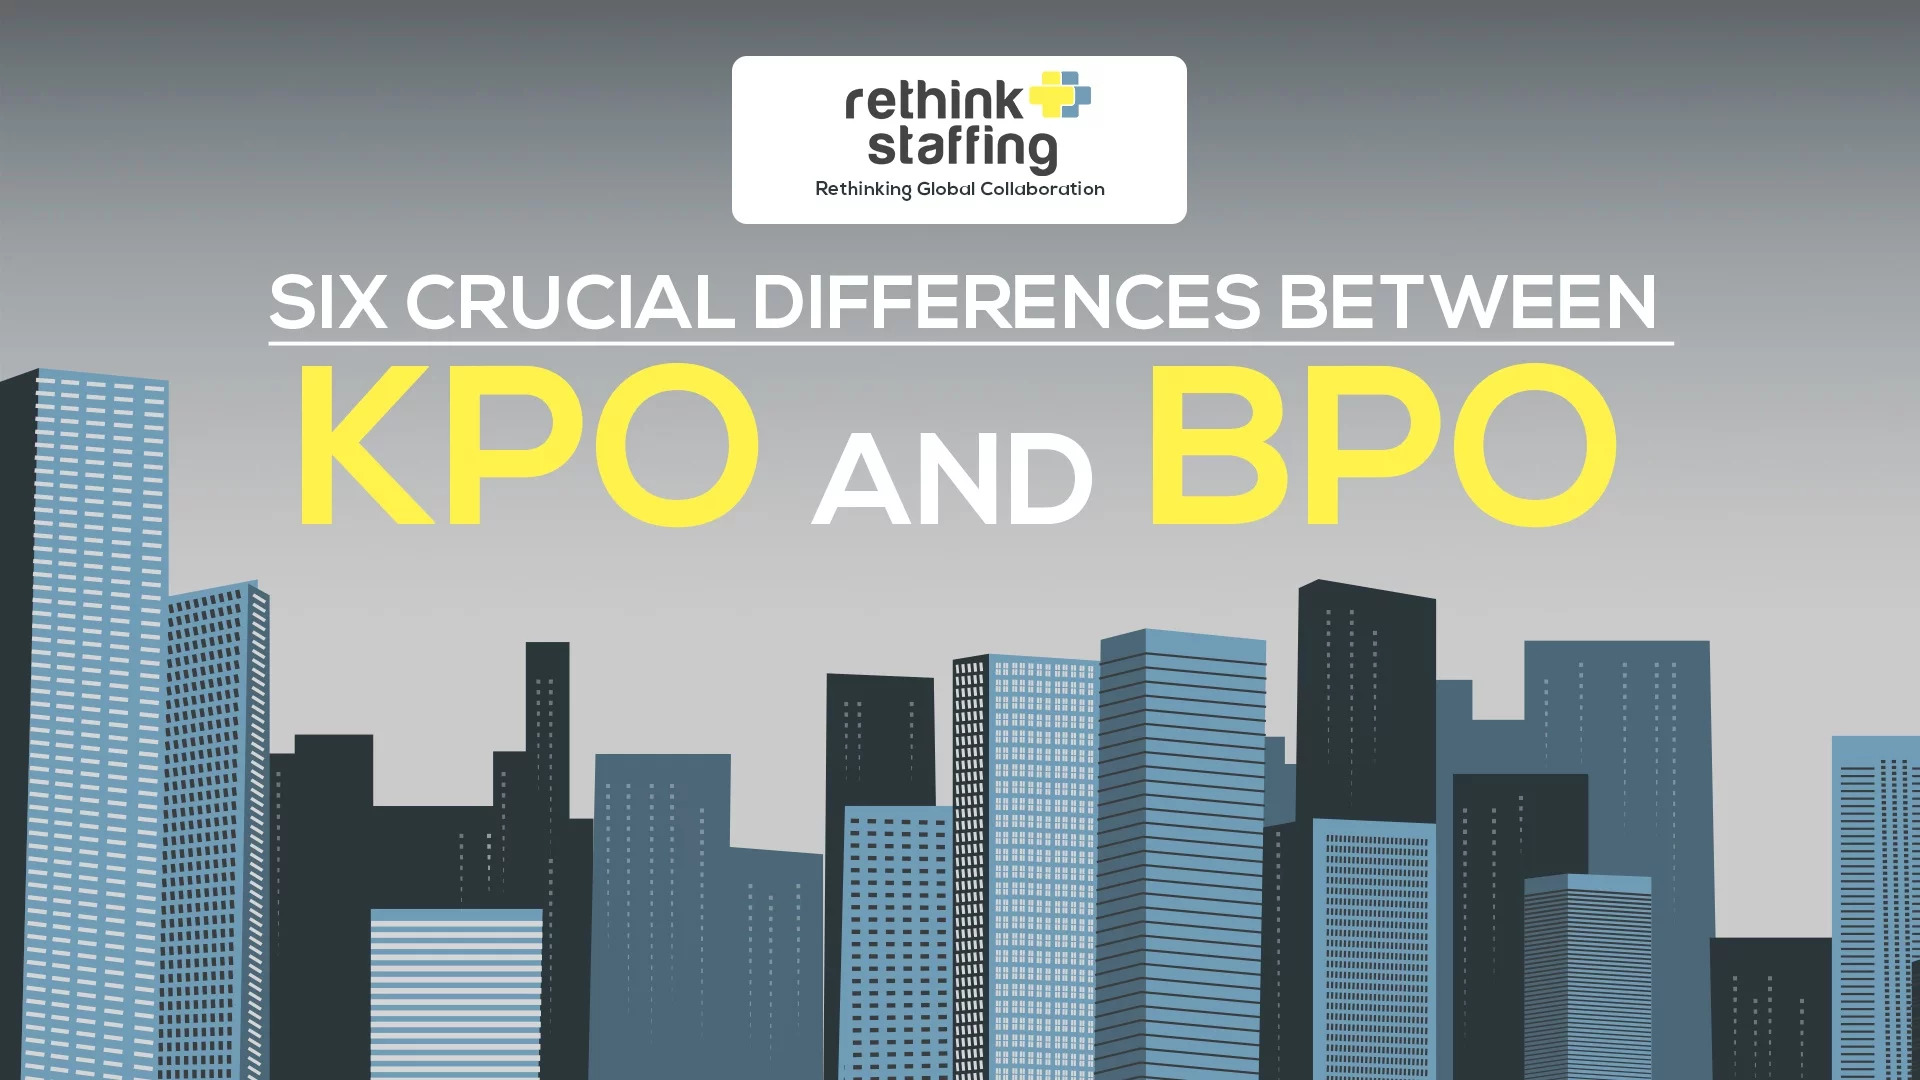 Six Crucial Differences Between KPO and BPO Infographic